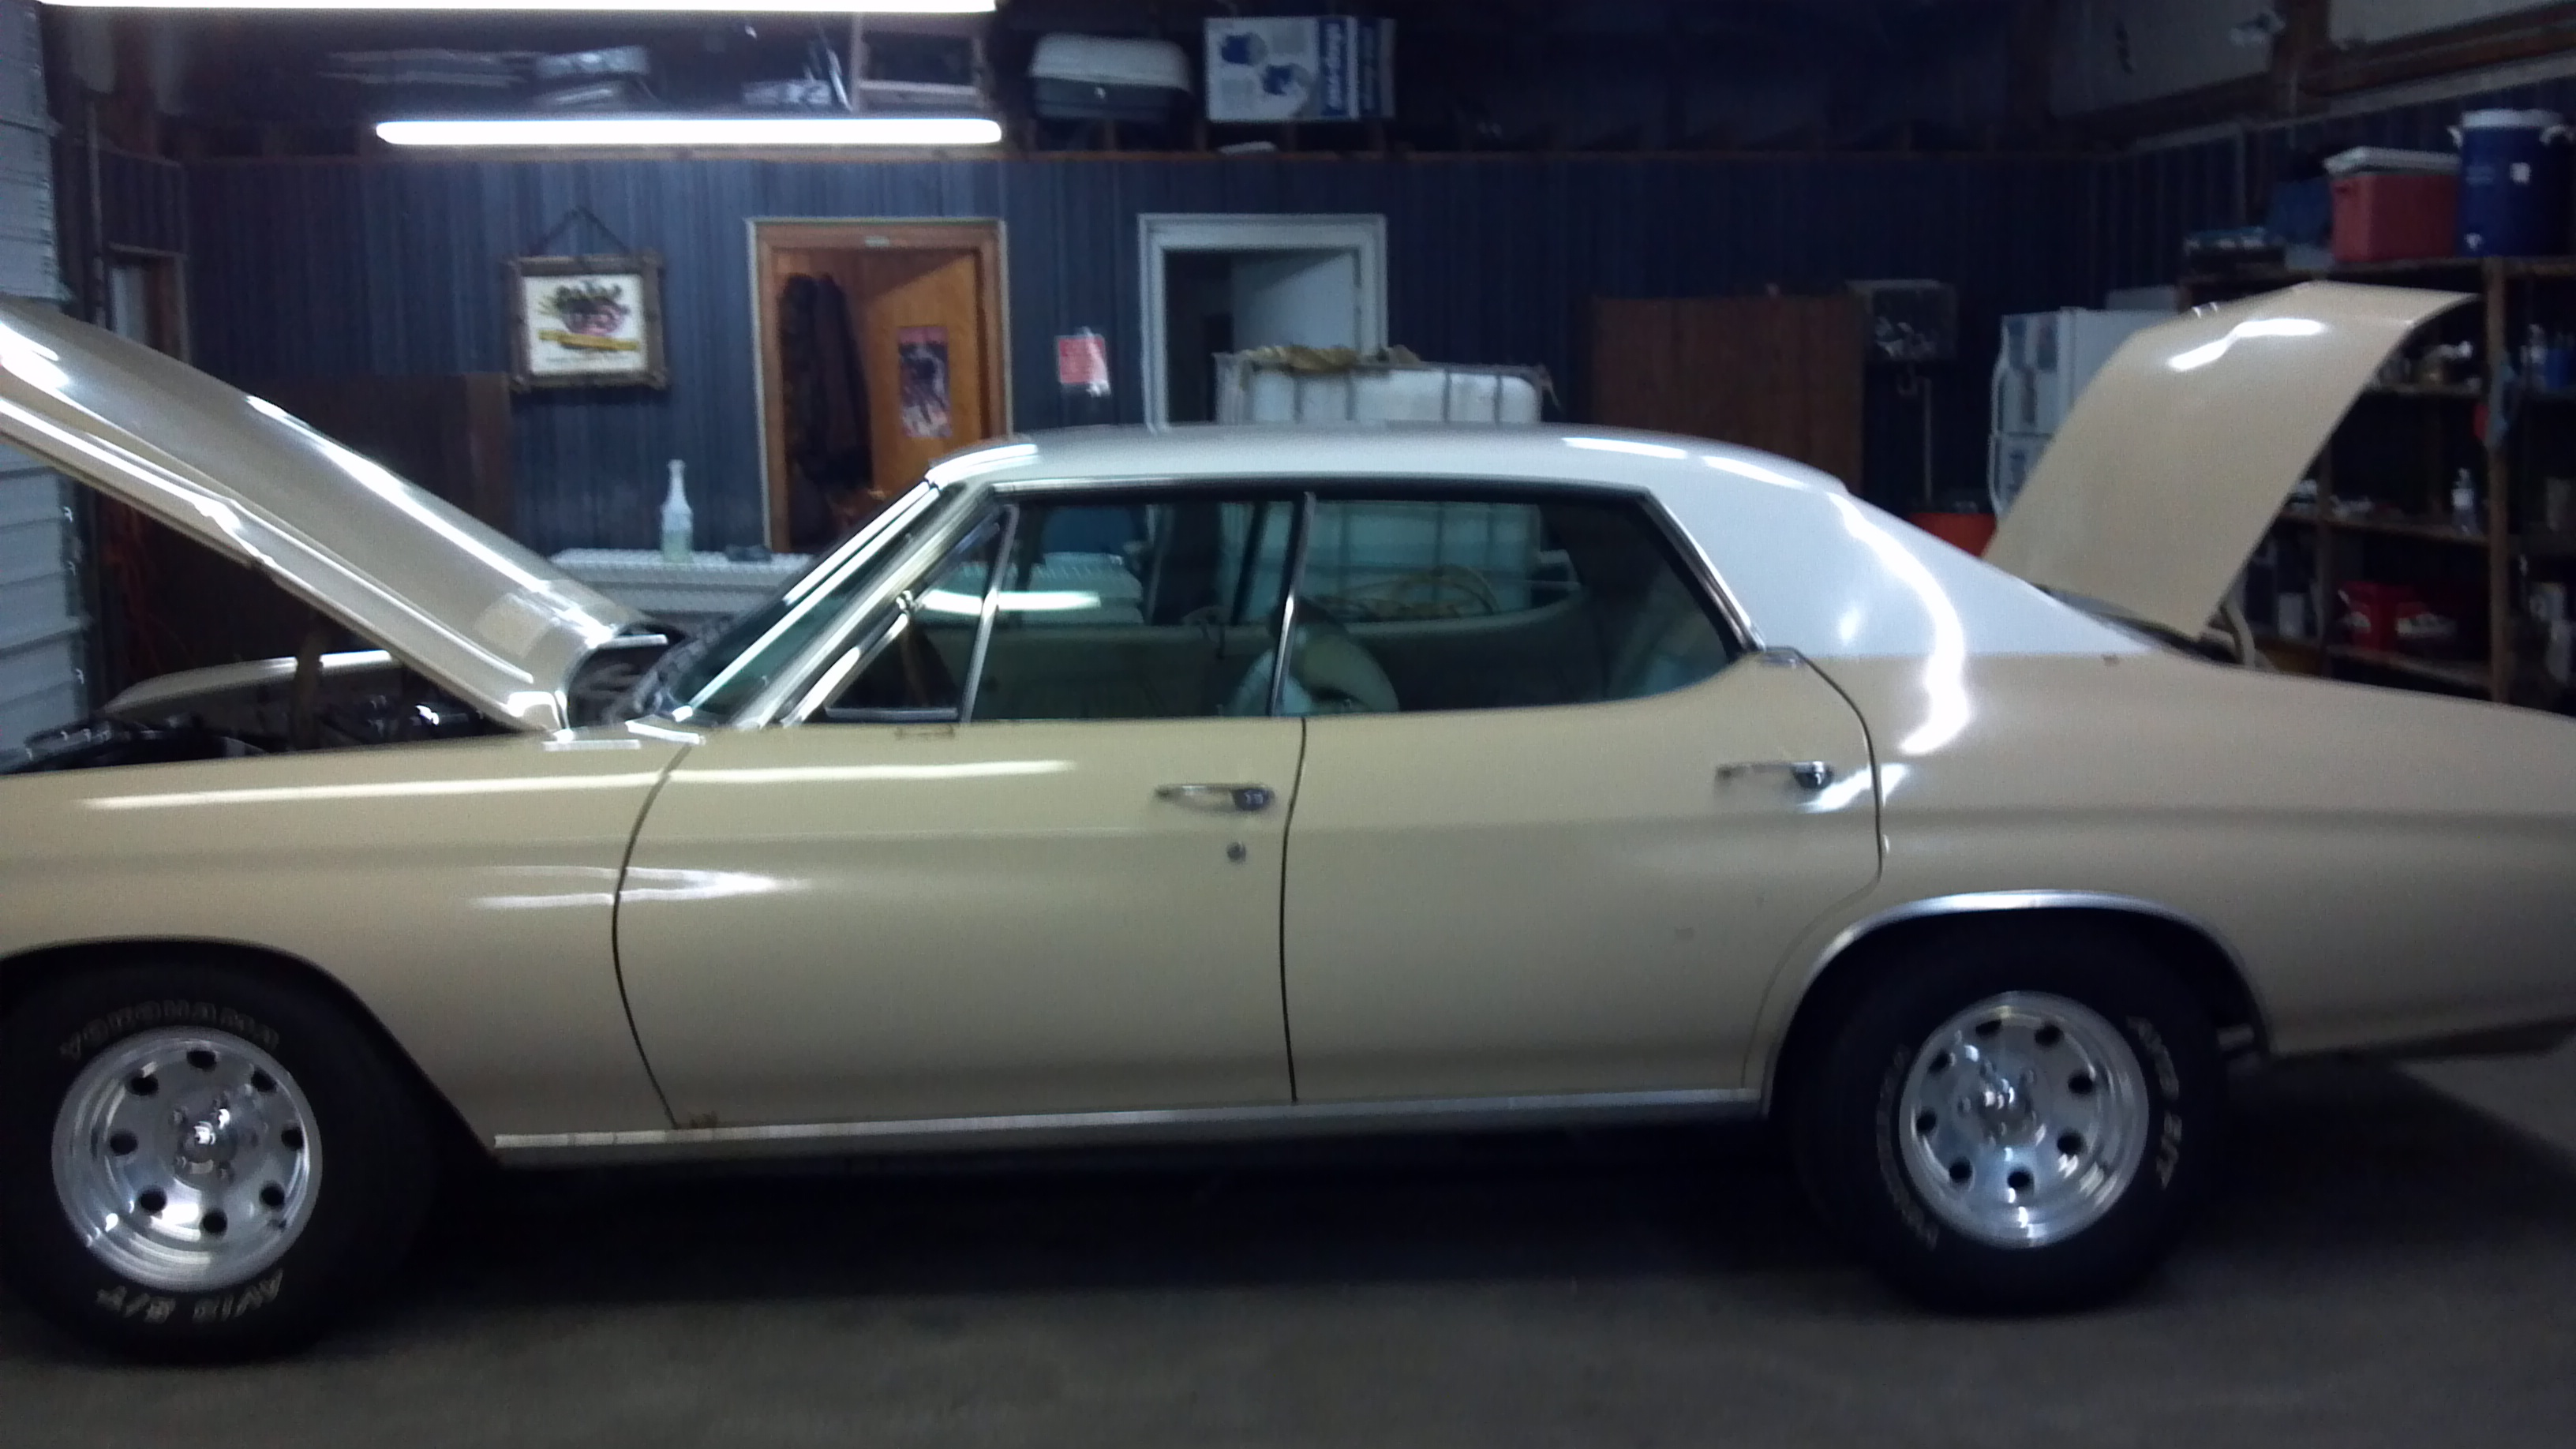 Click image for larger version  Name:71 chevelle ls.jpg Views:71 Size:892.7 KB ID:64981